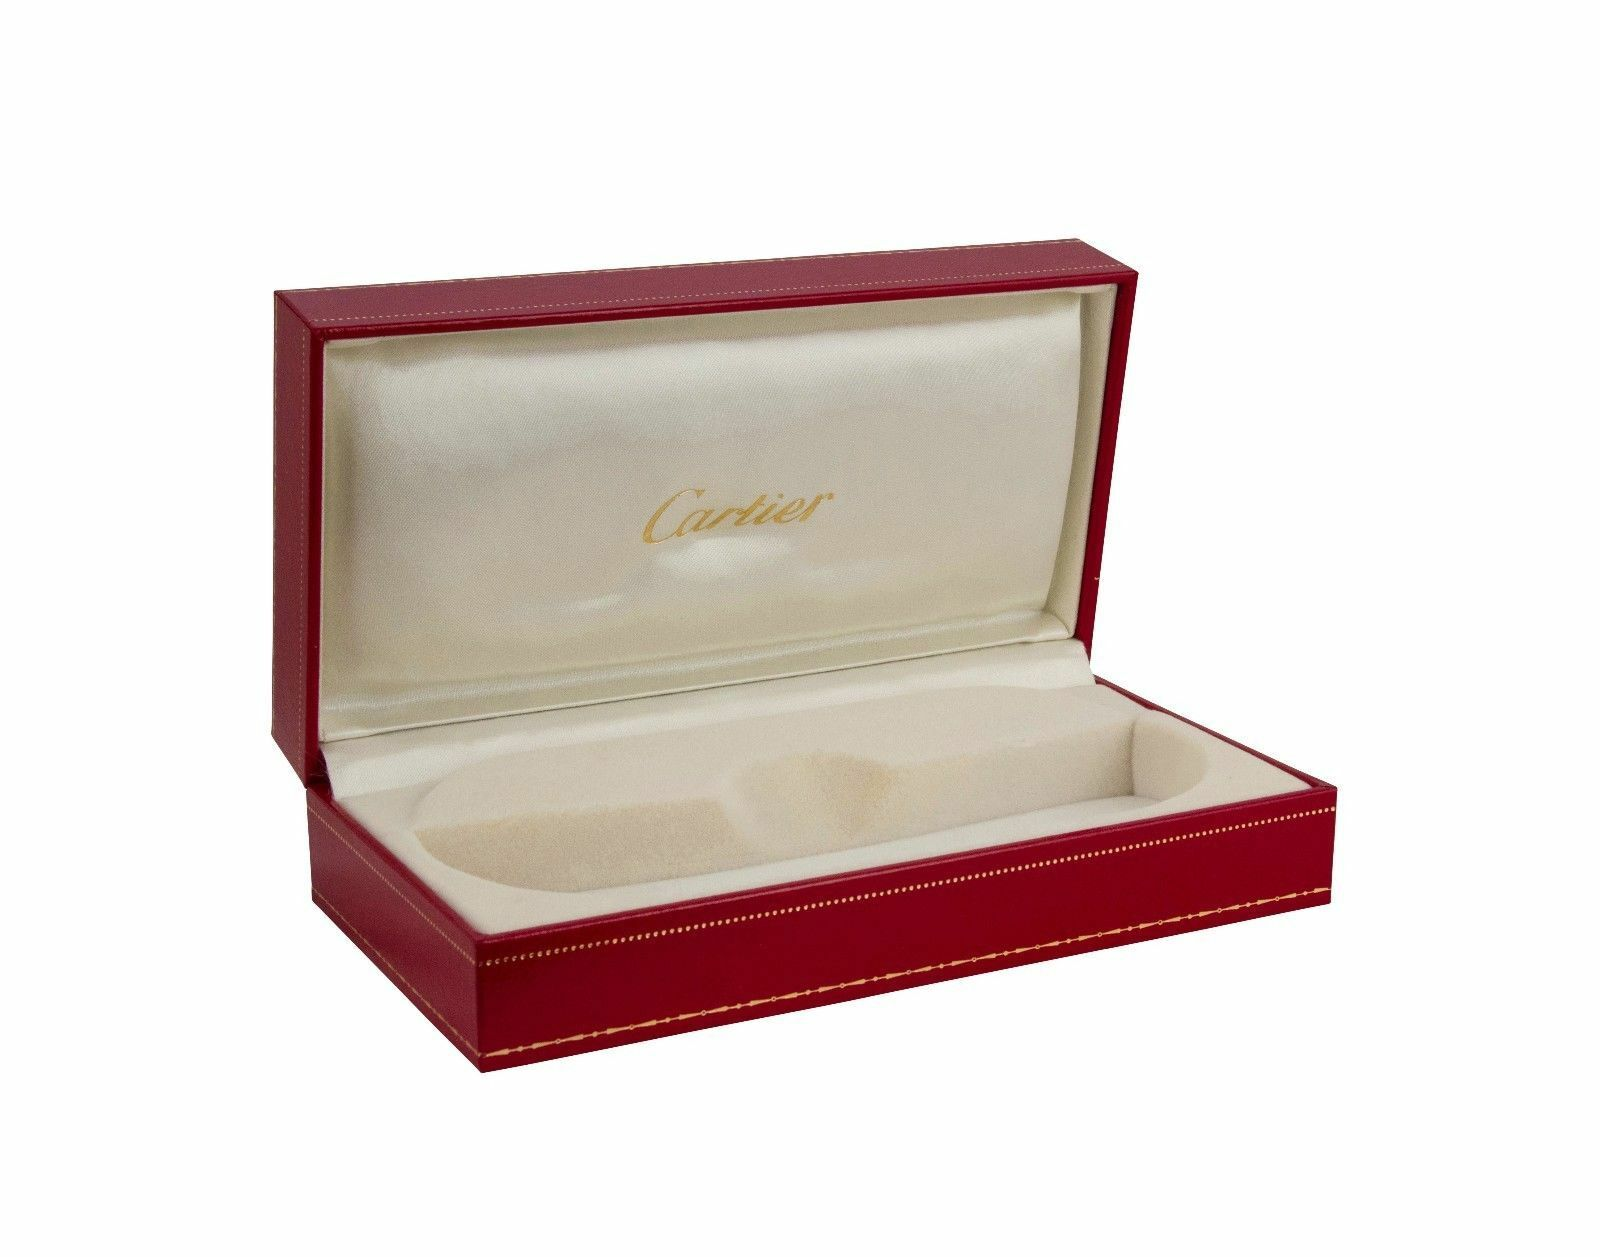 1738fa766a Cartier Square Brushed Pale Gold Eyeglasses T8100430 Frames Authentic France  for sale online